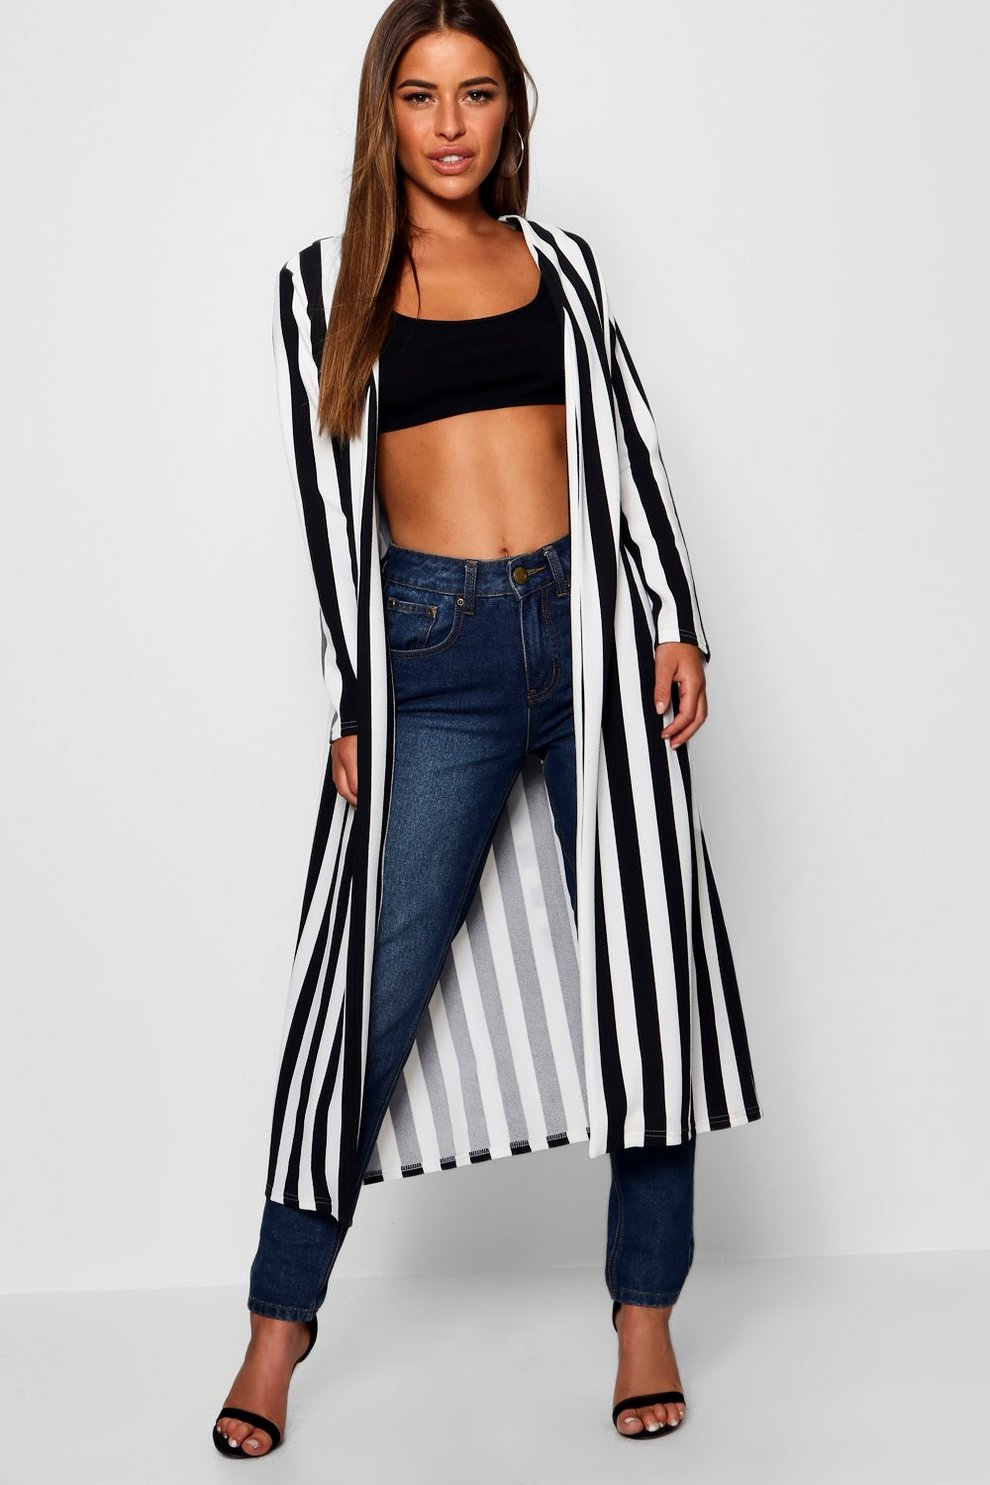 Buy Cheap Price Cost Cheap Online Boohoo Petite Contrast Stripe Belted Duster Cheap Real Outlet Fake Clearance Get To Buy gl0blLKBI